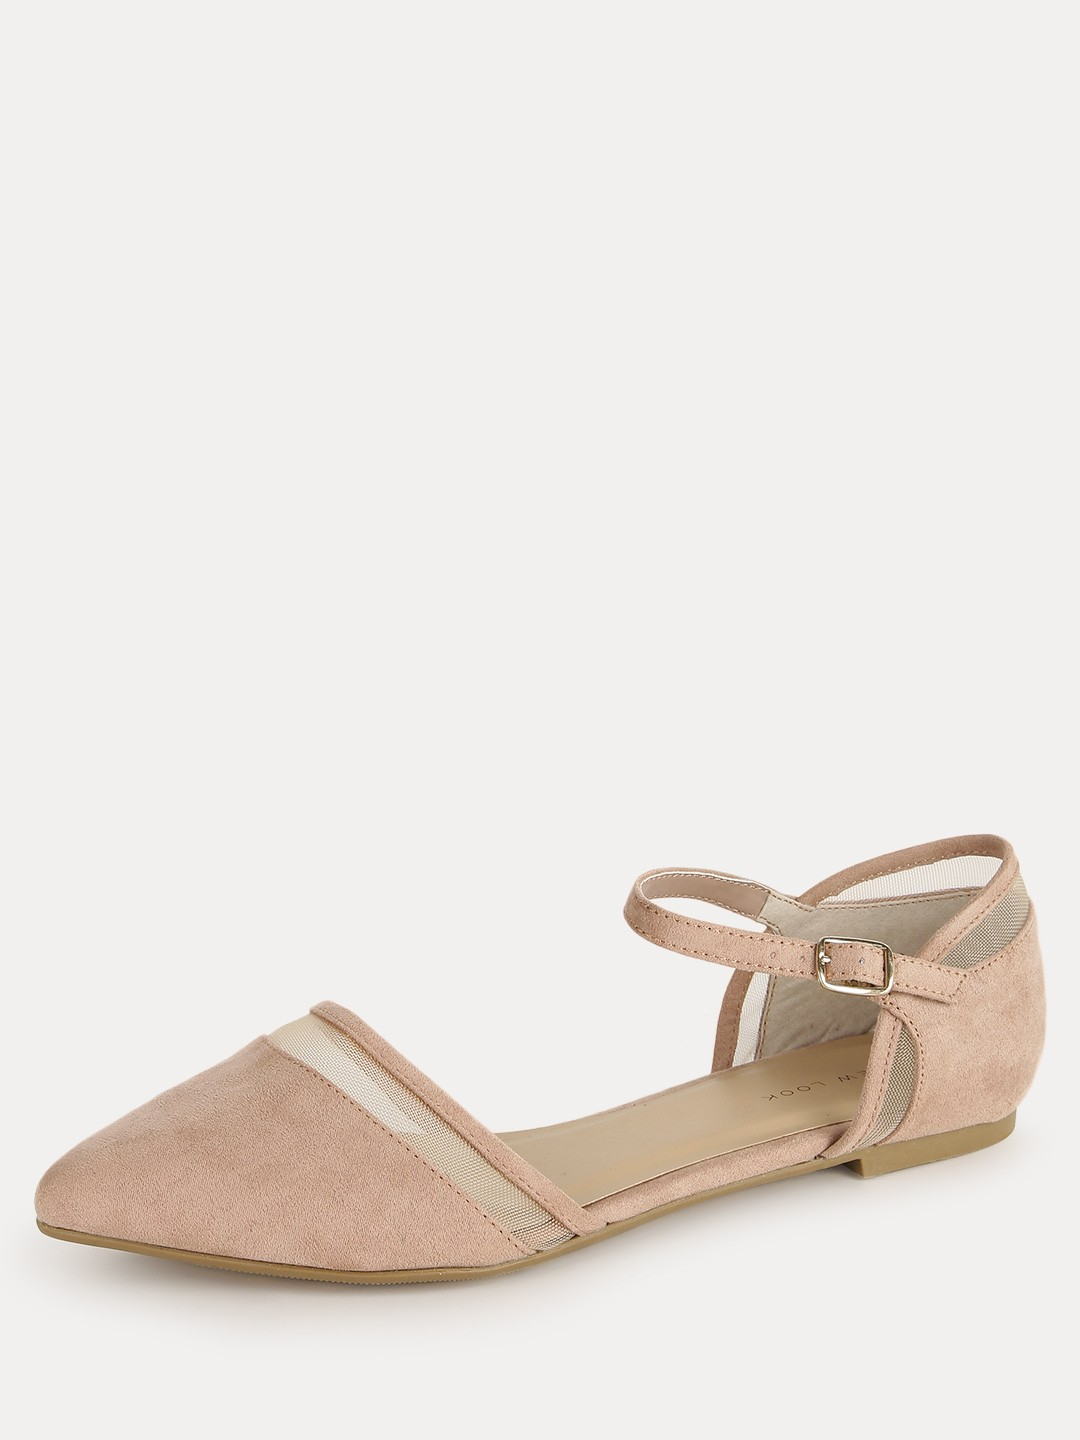 Womens sandals new look - New Look Pointed Flat Sandals